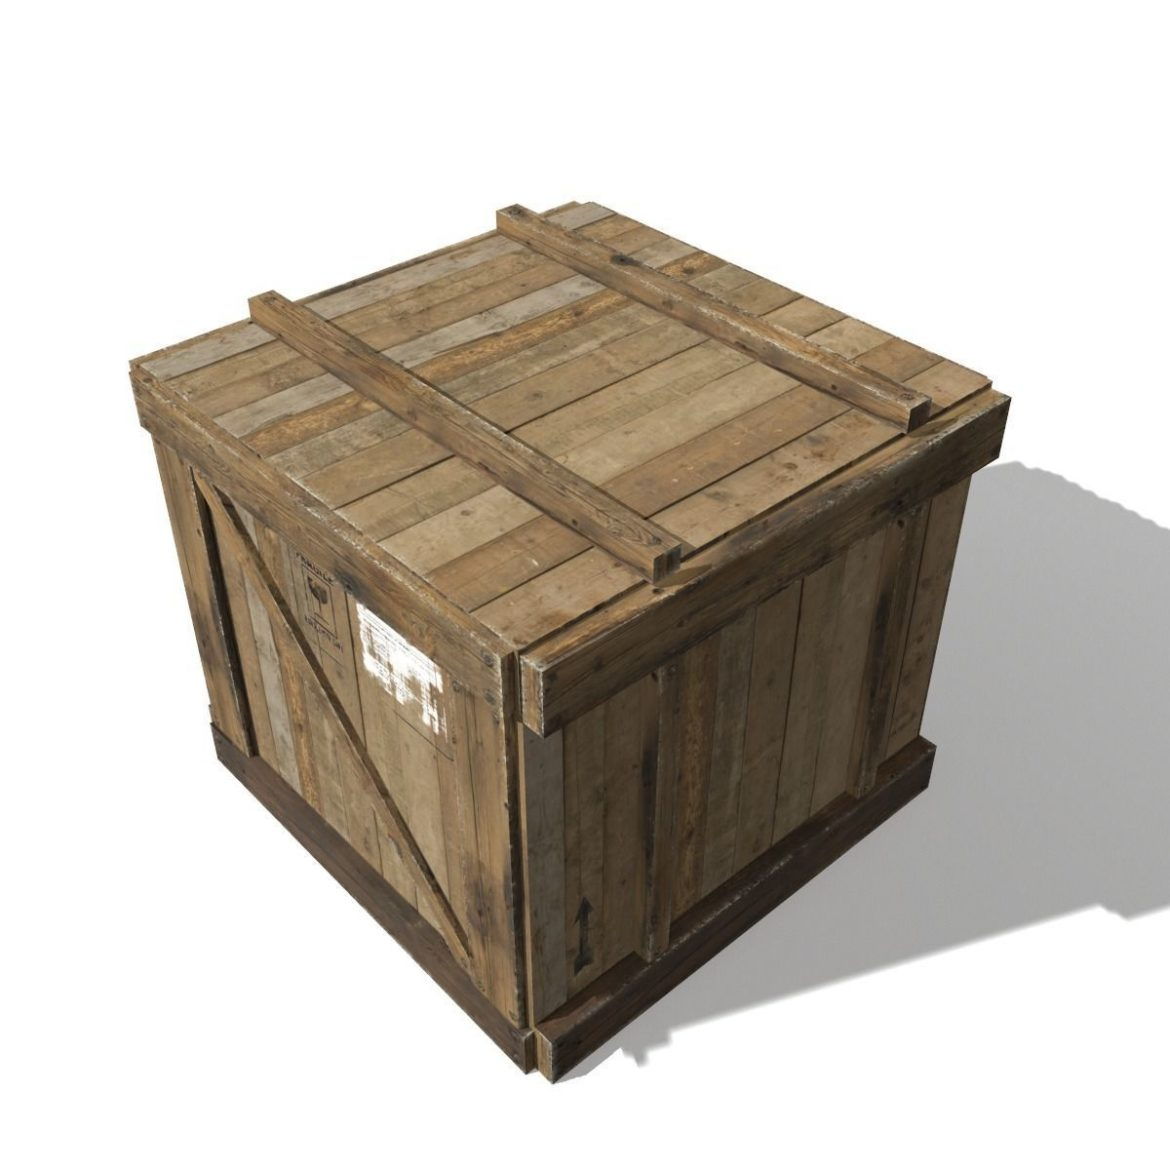 transport crates pack 3 3d model fbx obj 319438